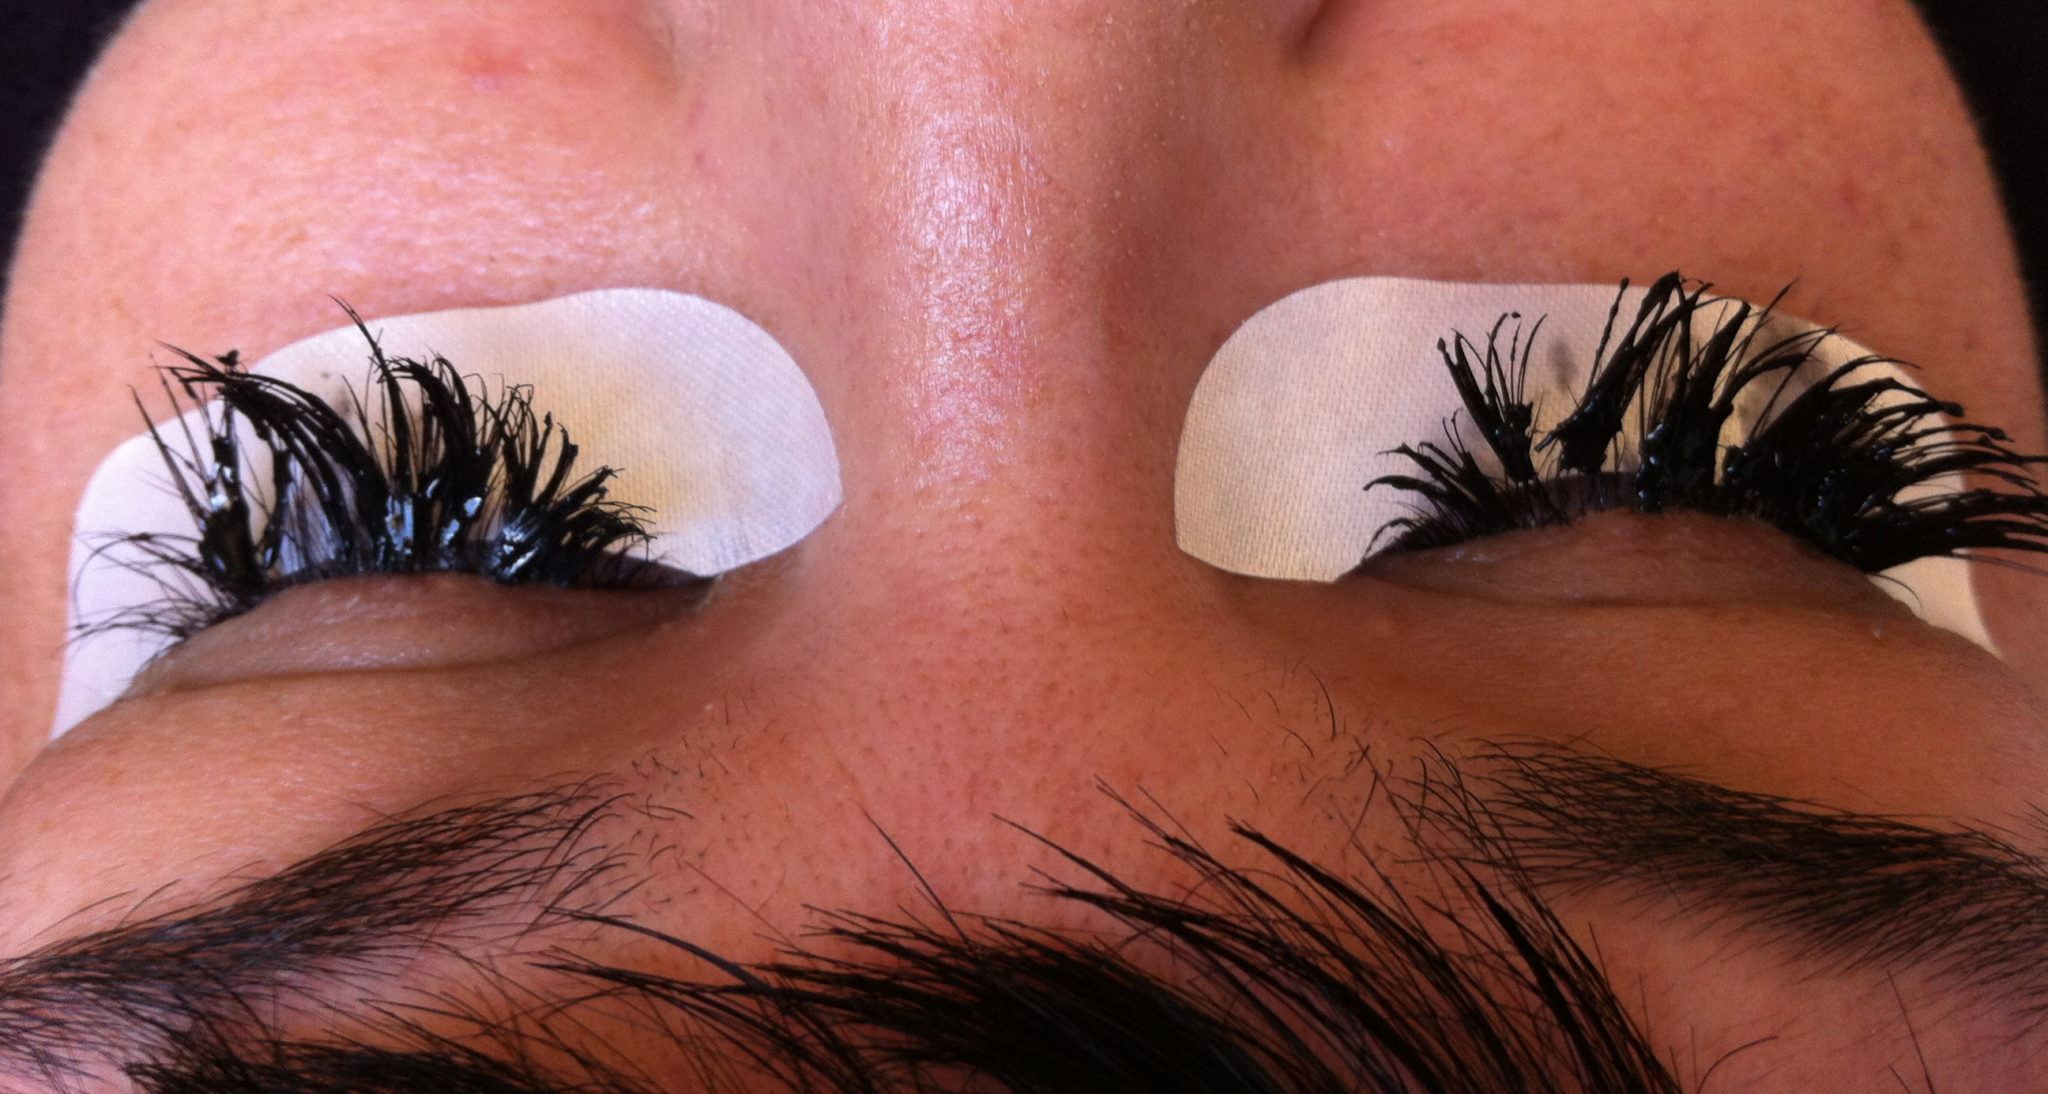 An example of poorly applied lash extensions